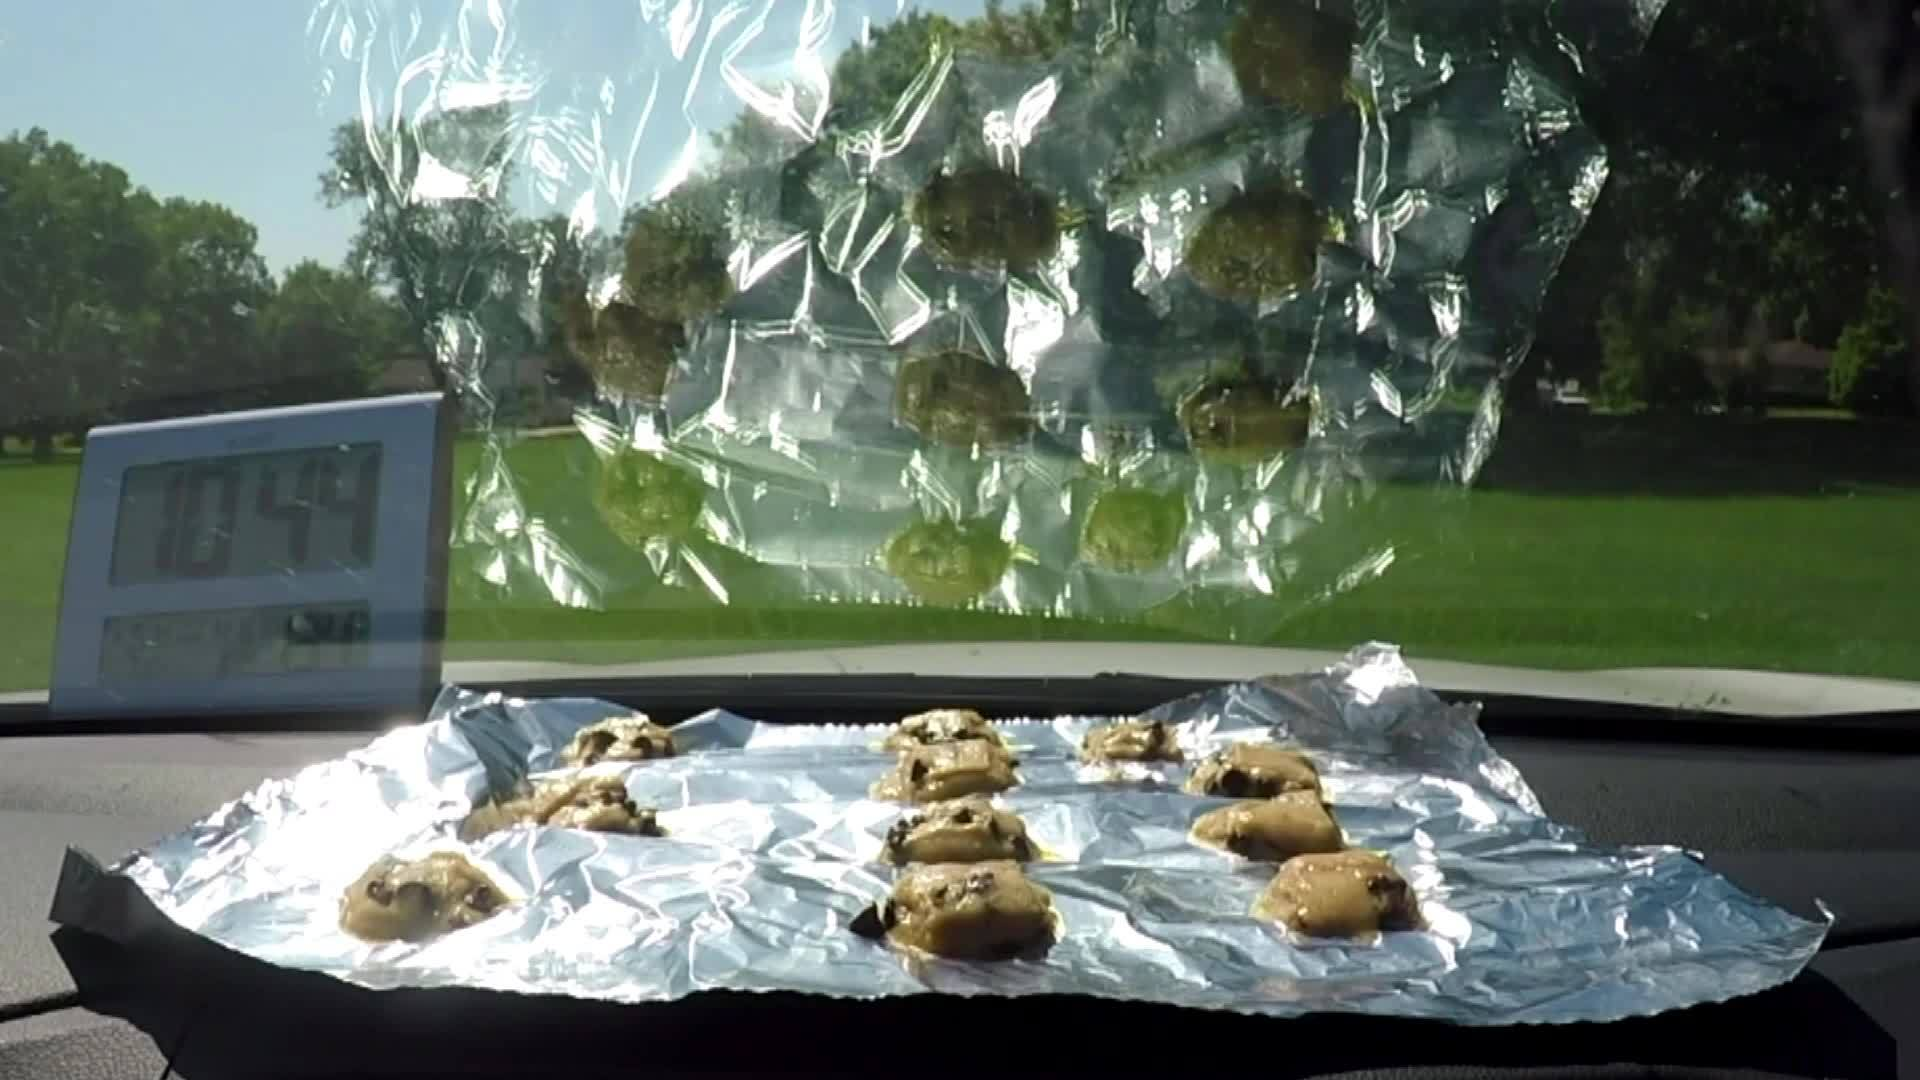 Time_Lapse_of_Heat_Baking_Cookies_in_Car_0_20180630011502